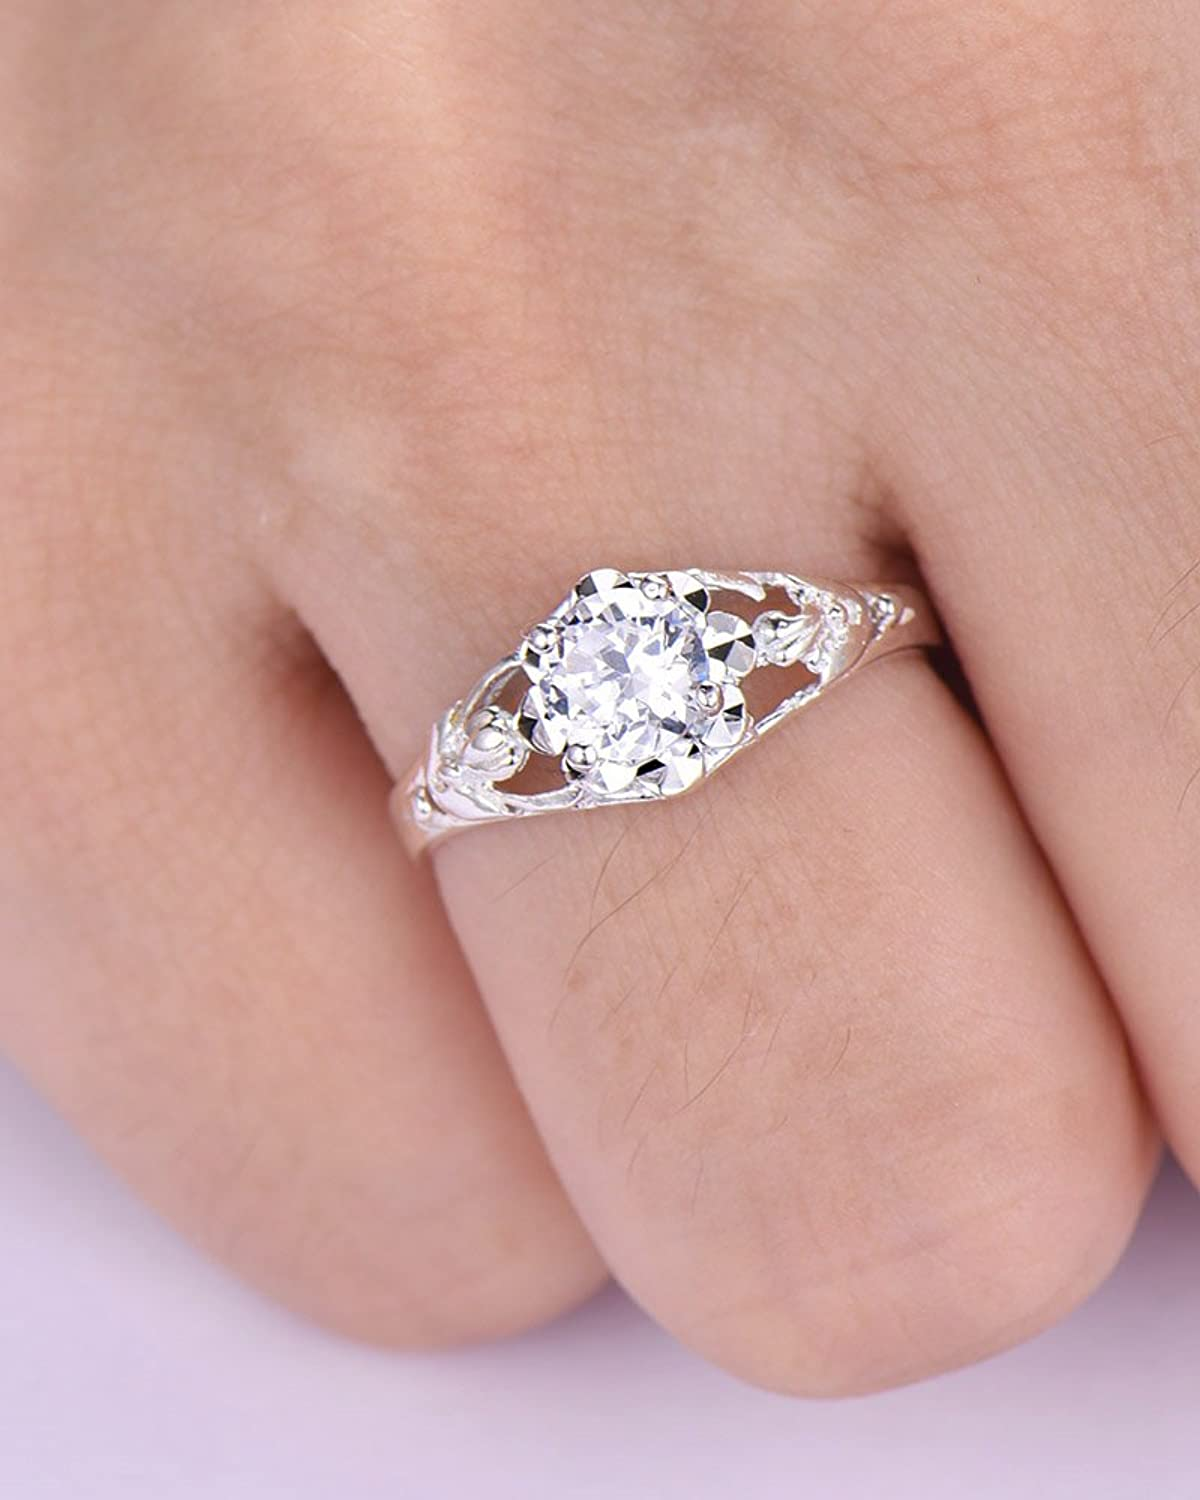 Amazon.com: CZ Cubic Zirconia 925 Sterling Silver Engagement Ring ...